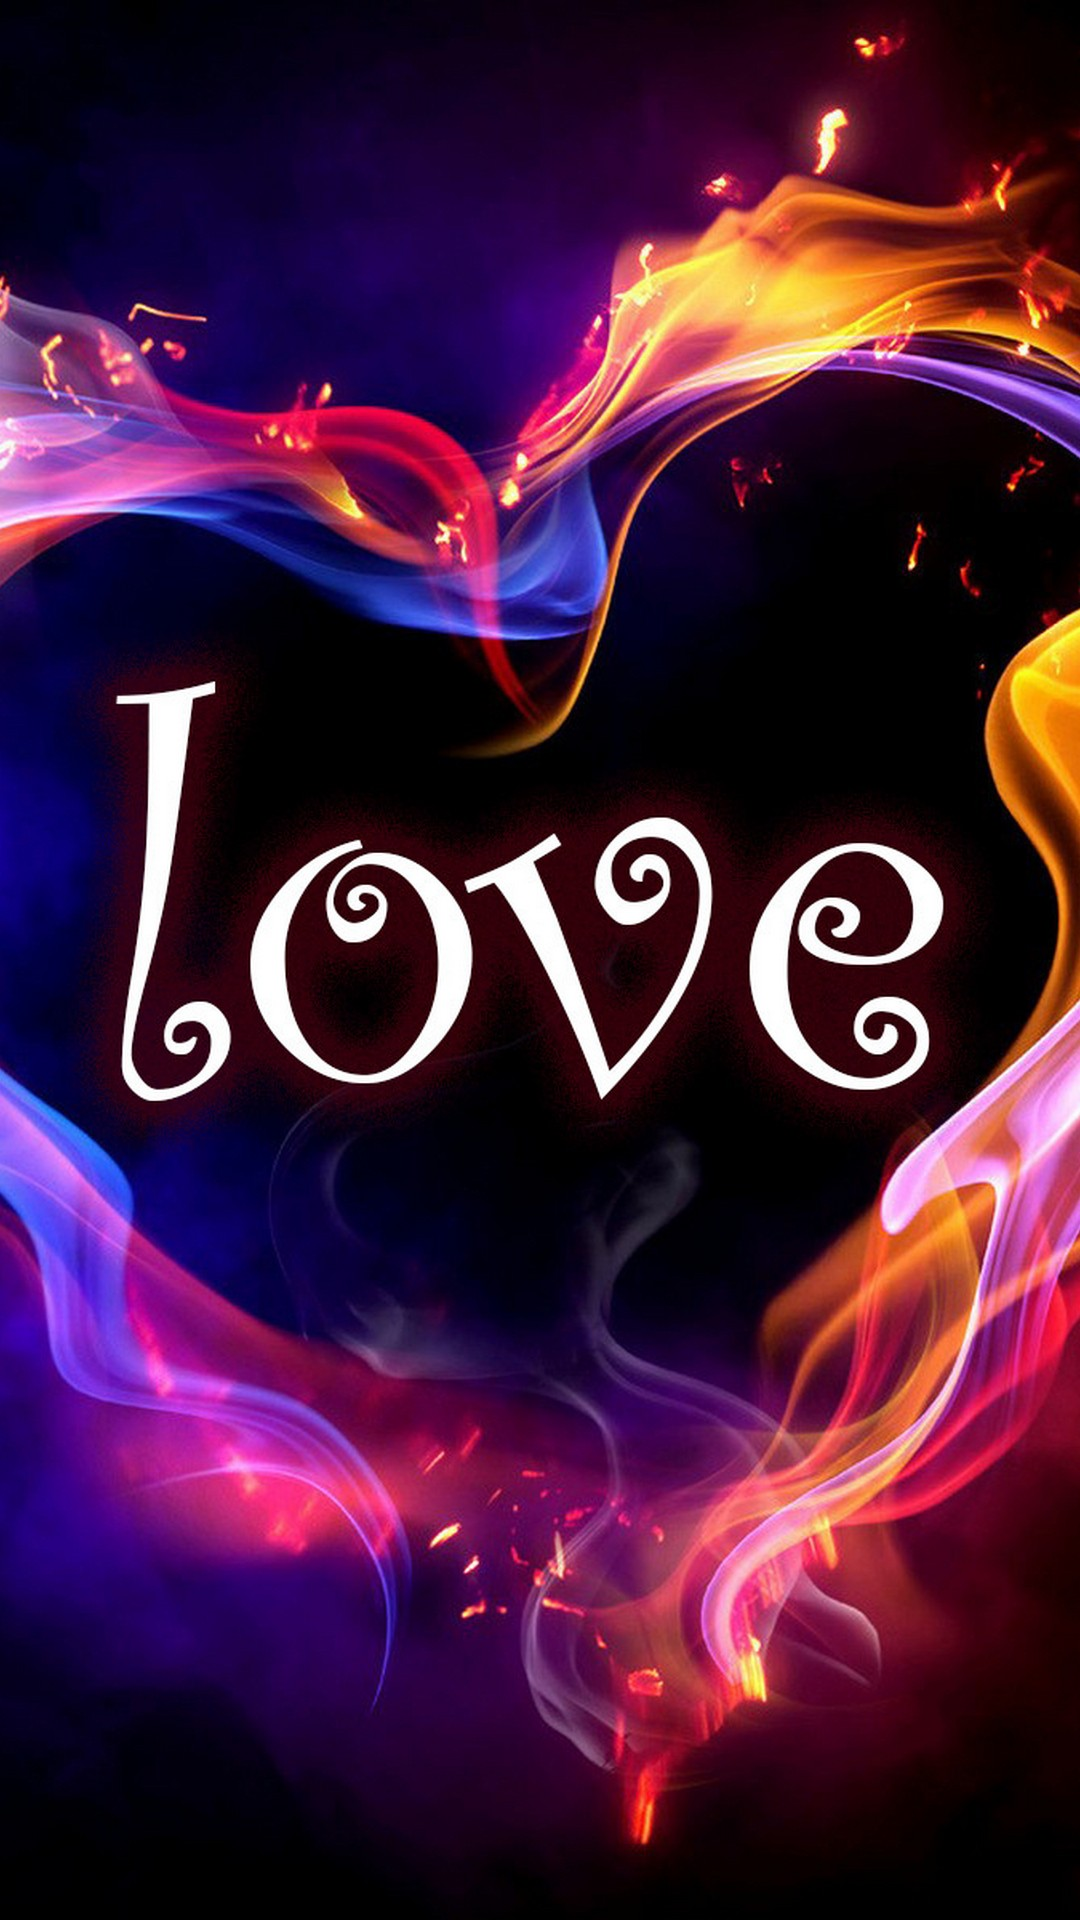 Start Download Love Wallpapers For Android Phone 889845 Hd